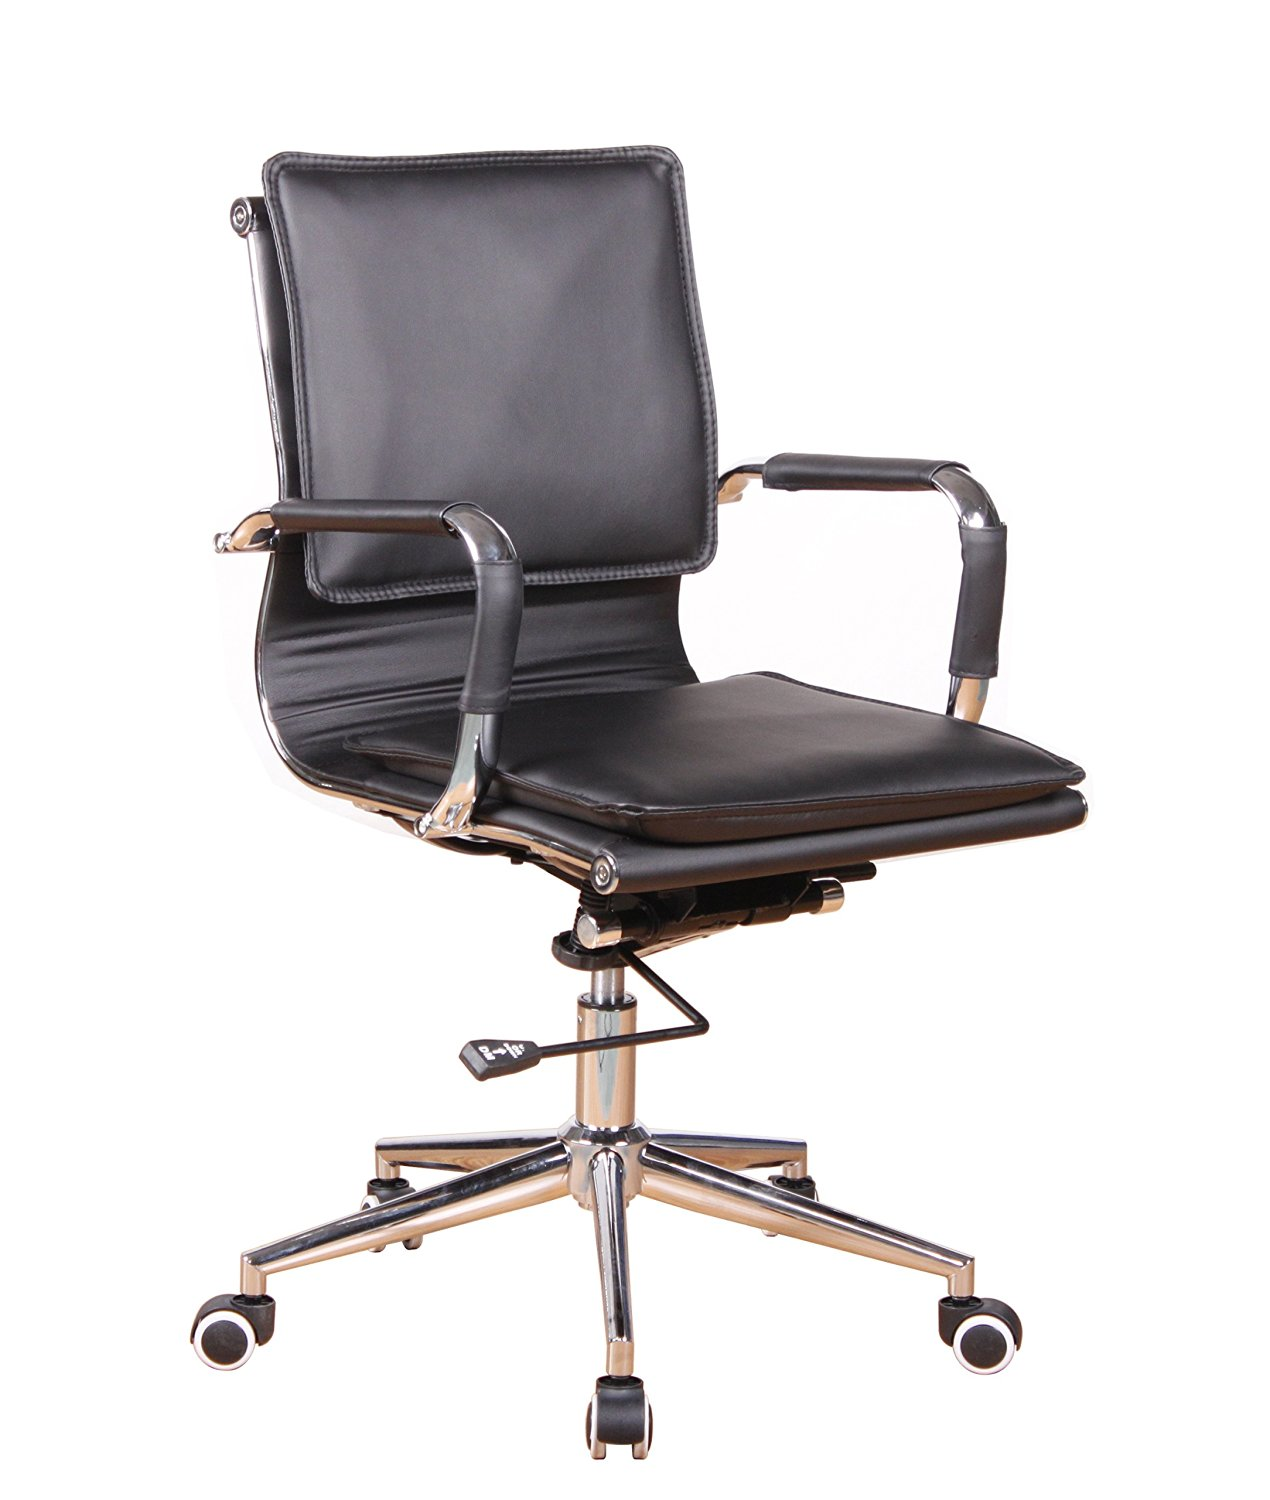 Office Factor Black Bonded Leather Modern Contemporary Managers Executive Desk Chair Polyurethane Casters For Hard